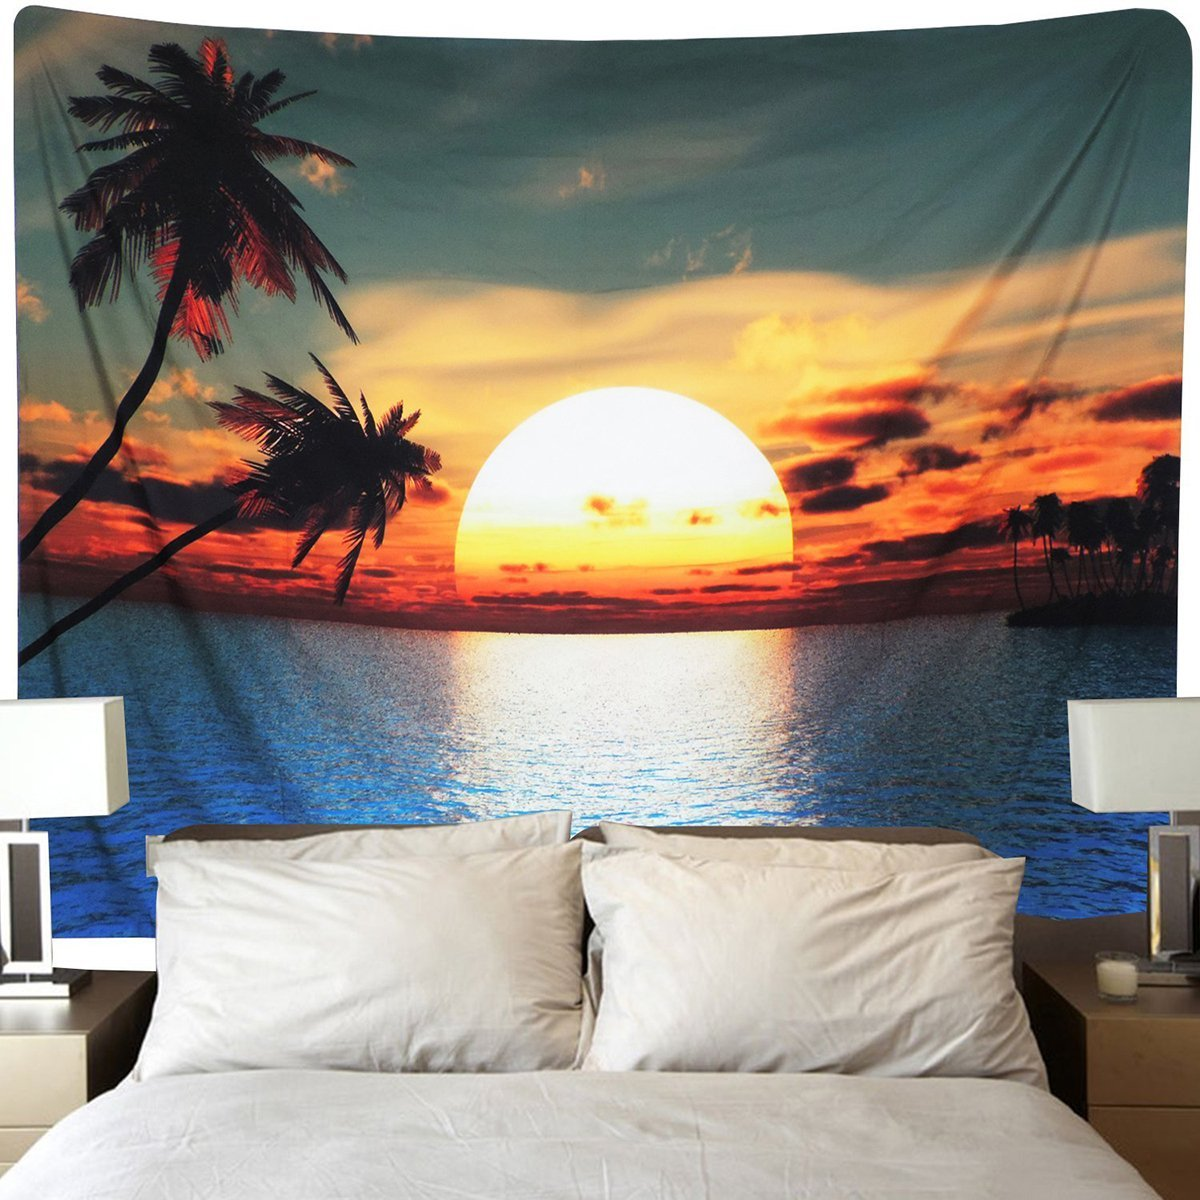 Tapestry Tropical Island Beach With Sunset Wall Hanging Tapestry Dorm Decor